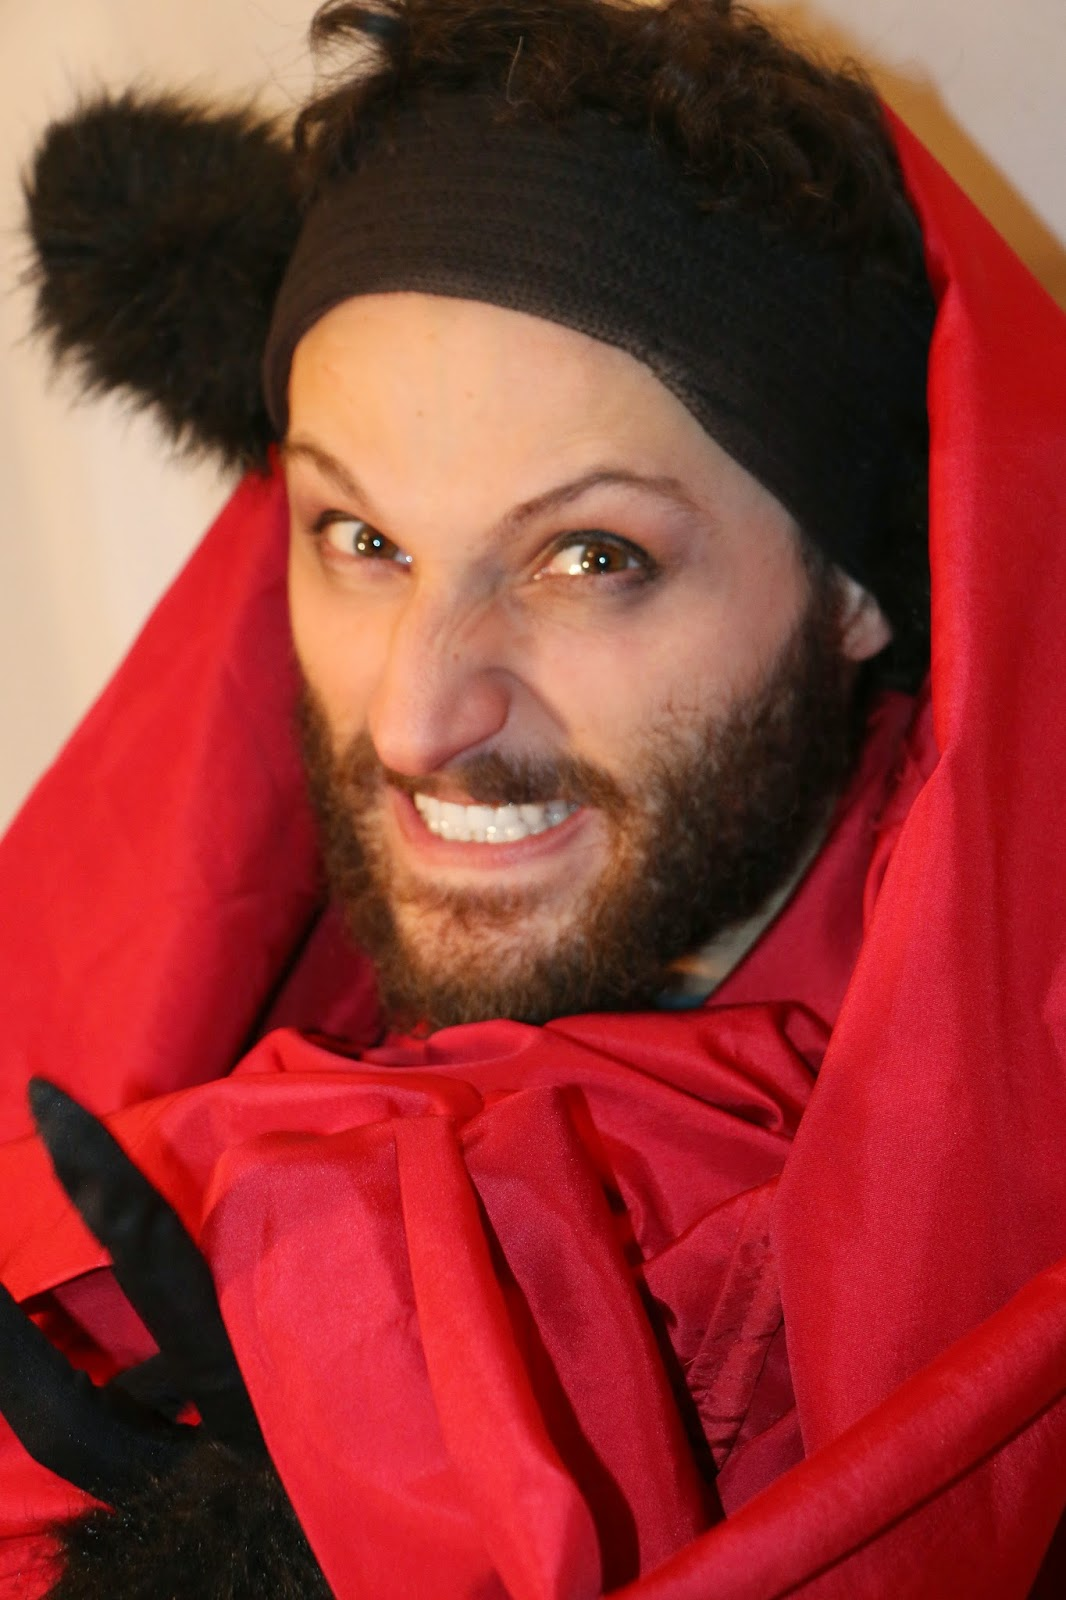 THE CHARMING BIG BAD WOLF-1K-RED RIDING HOOD 2015--GLEAMS THEATER--IRA SOKOLOVA- PHOTO: SHAHRZAD GHAFFARI WESTMOUNT, QUEBEC, CANADA